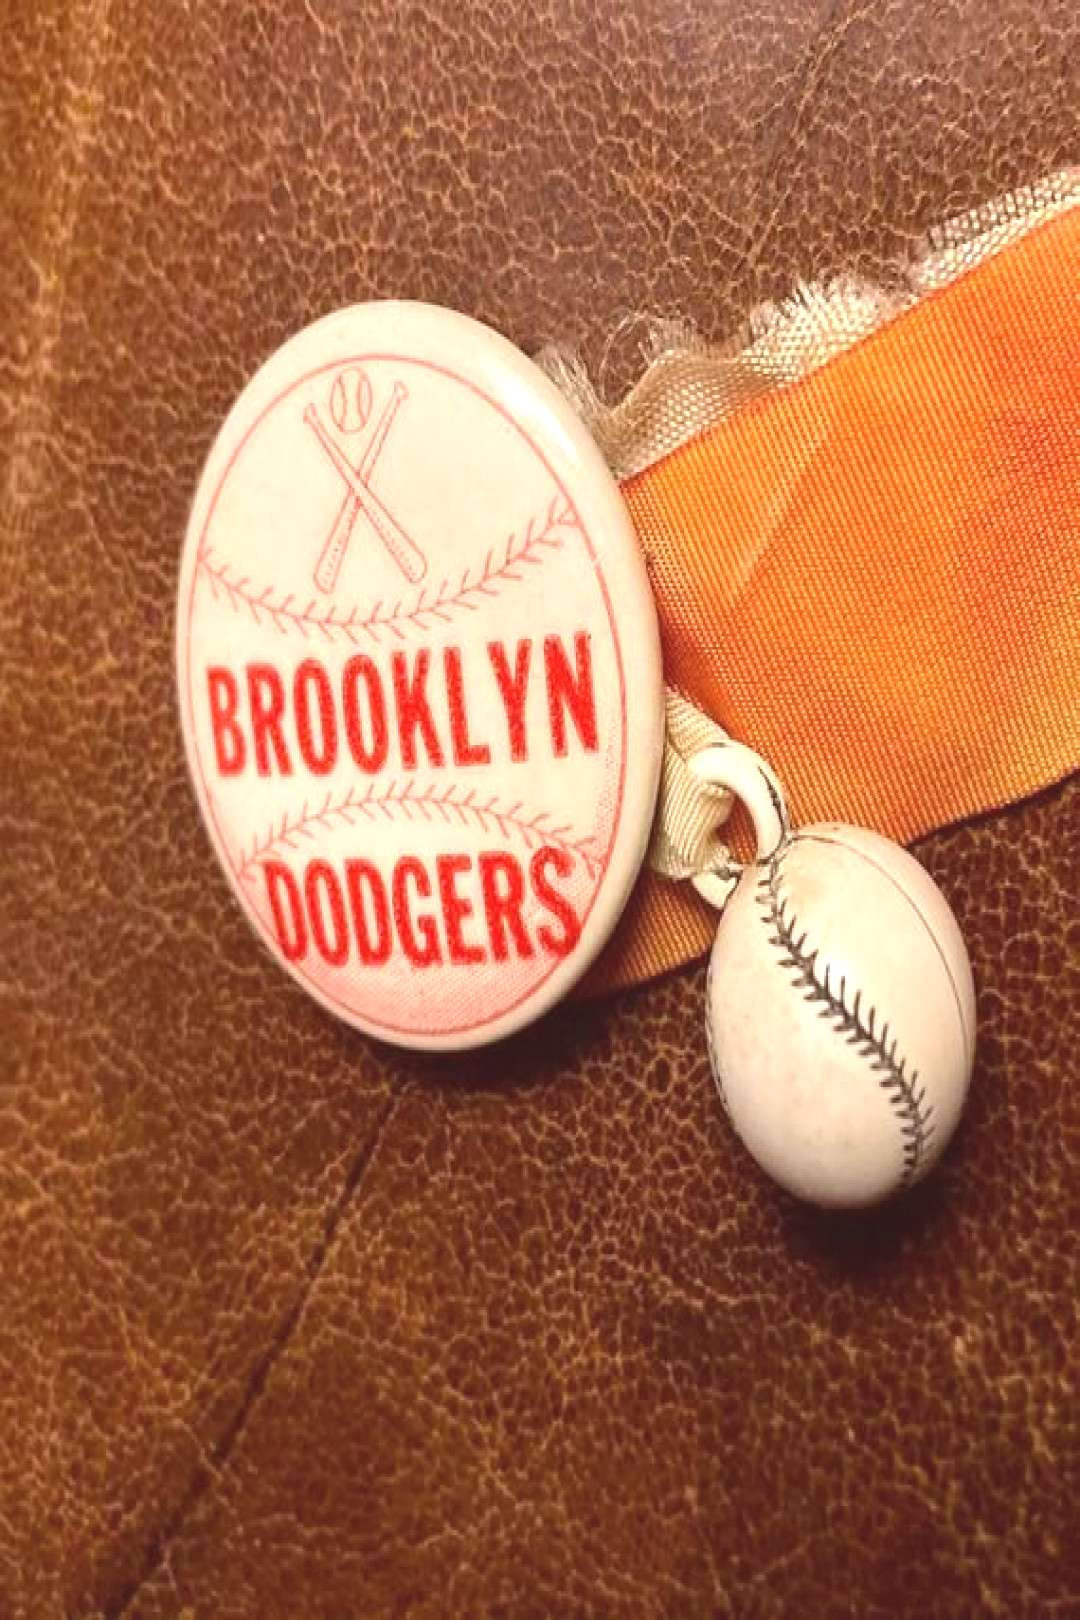 Vintage Brooklyn Dodgers  Baseball Pin Pinback  ribbons and baseball charm NYC New York City Rare c